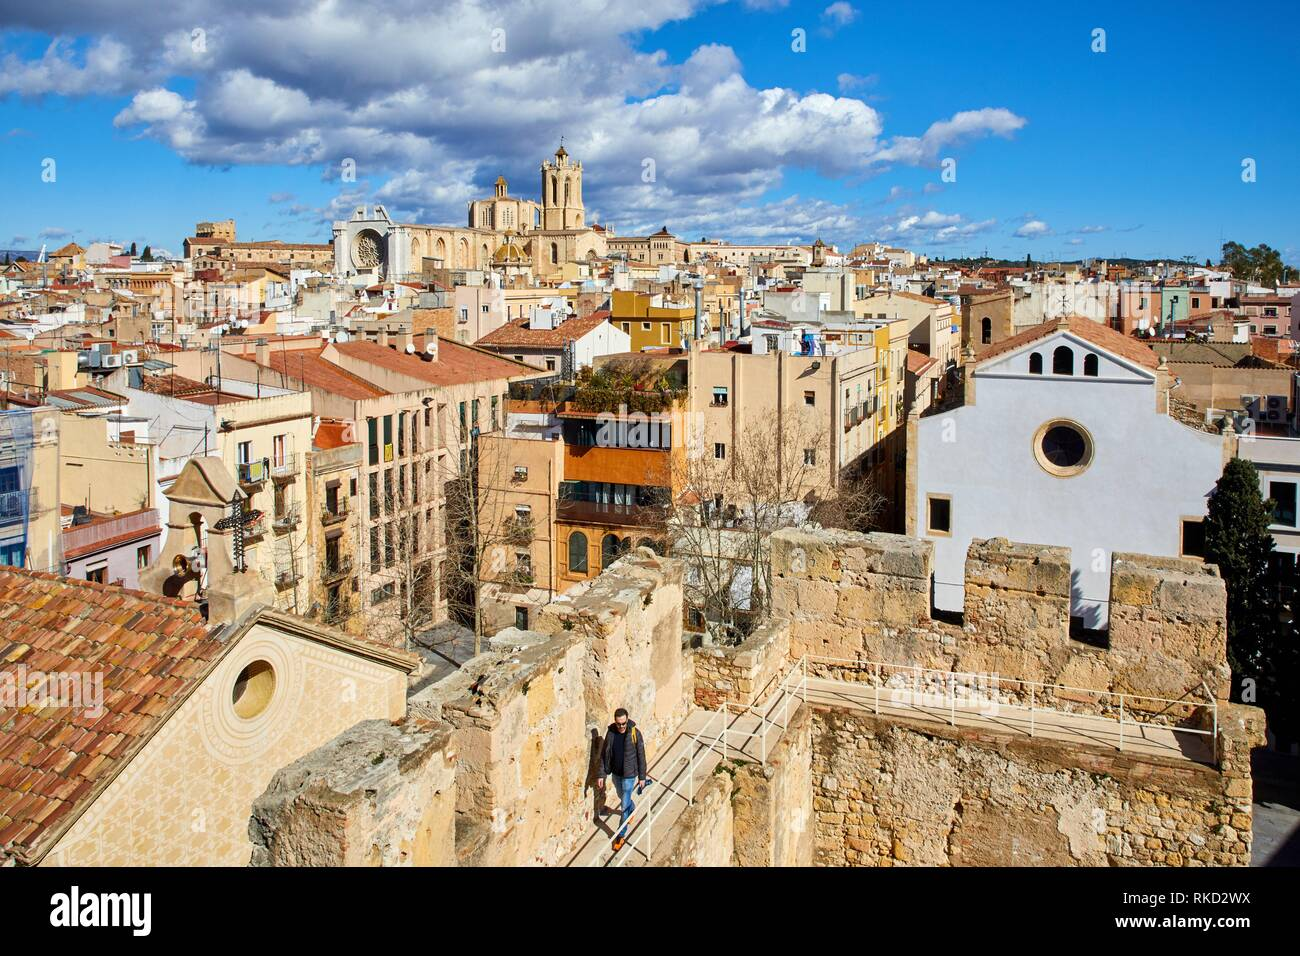 Cathedral, Roman Praetorium, Plaça del Rei, Tarragona City, Catalonia, Spain, Europe - Stock Image